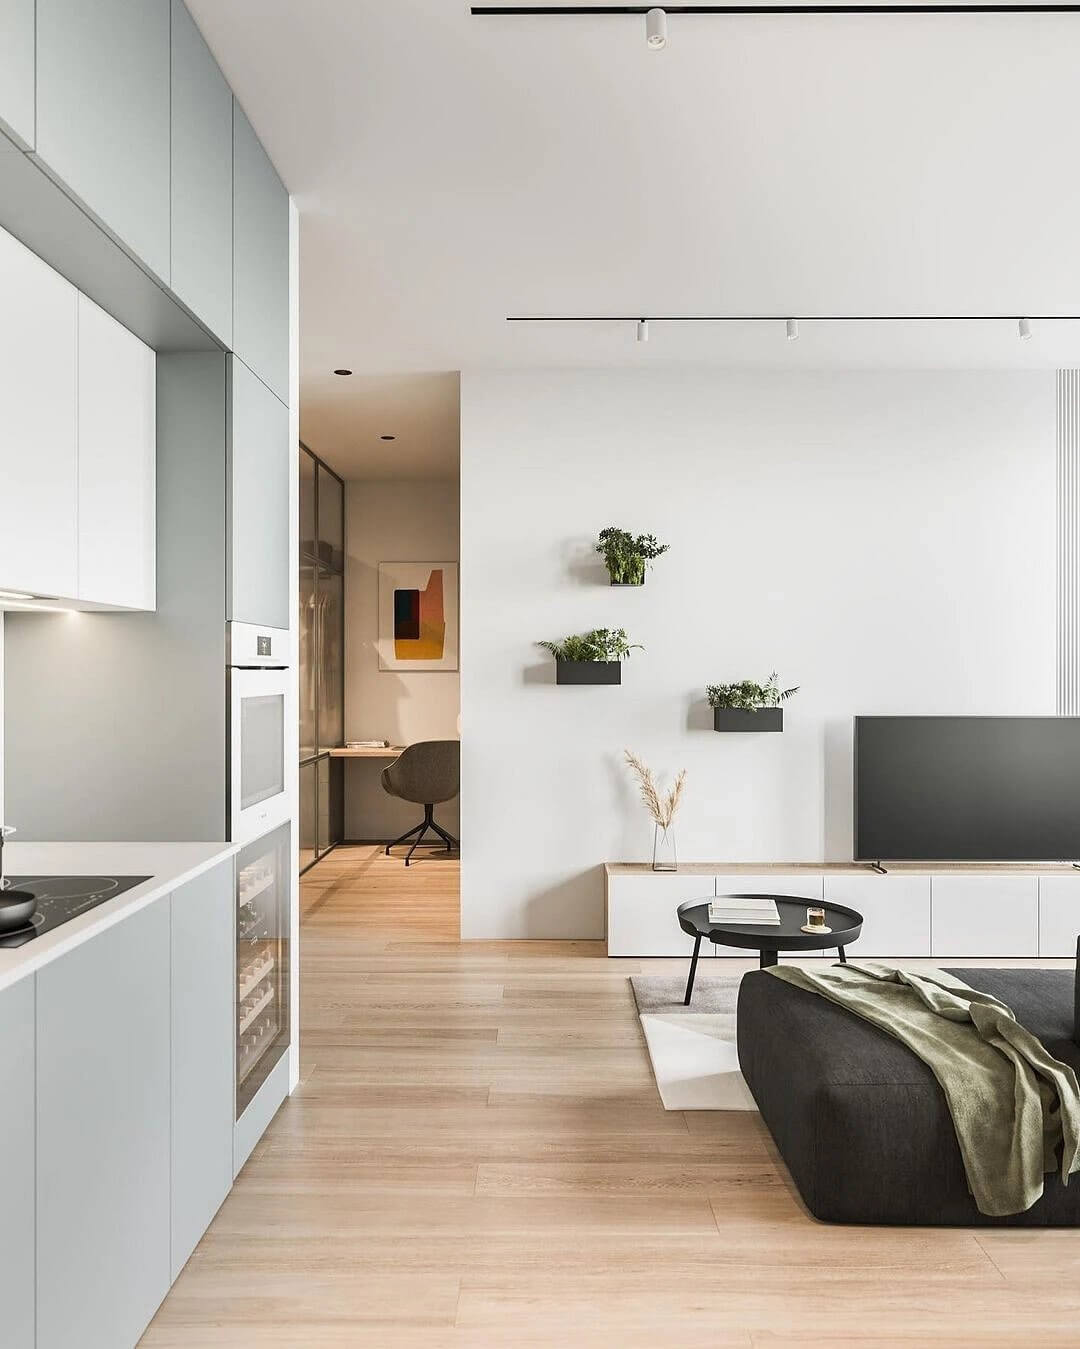 21. An interior built on minimalism in shades and details